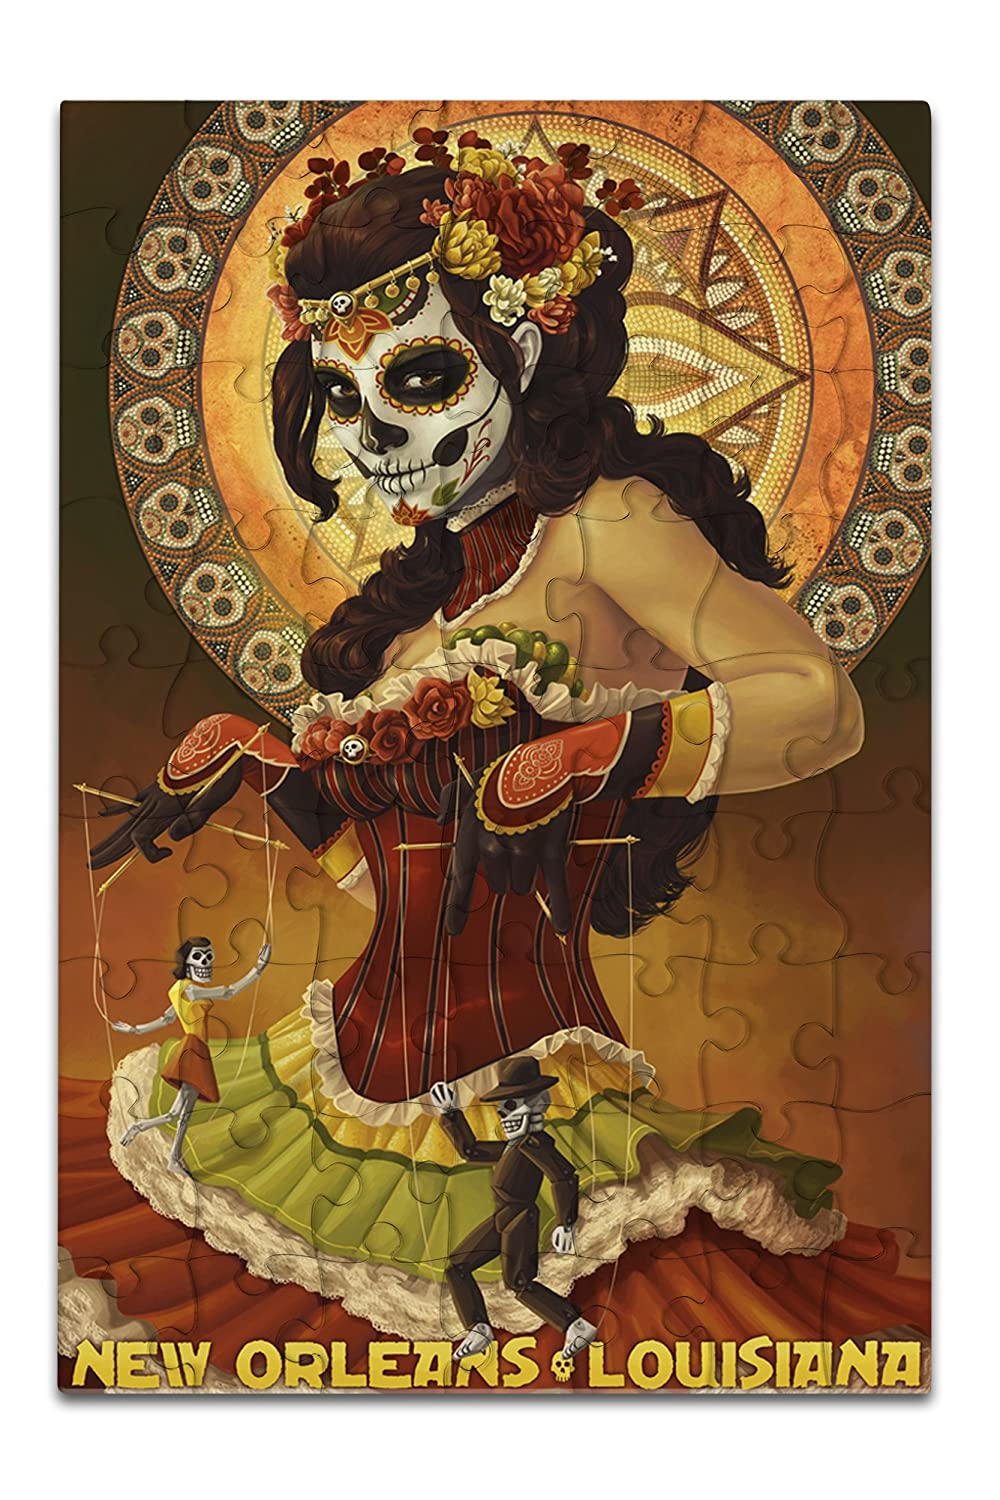 New Orleans, Louisiana - Dia De Los Muertos Marionettes - Day of the Dead (8x12 Premium Acrylic Puzzle, 63 Pieces)